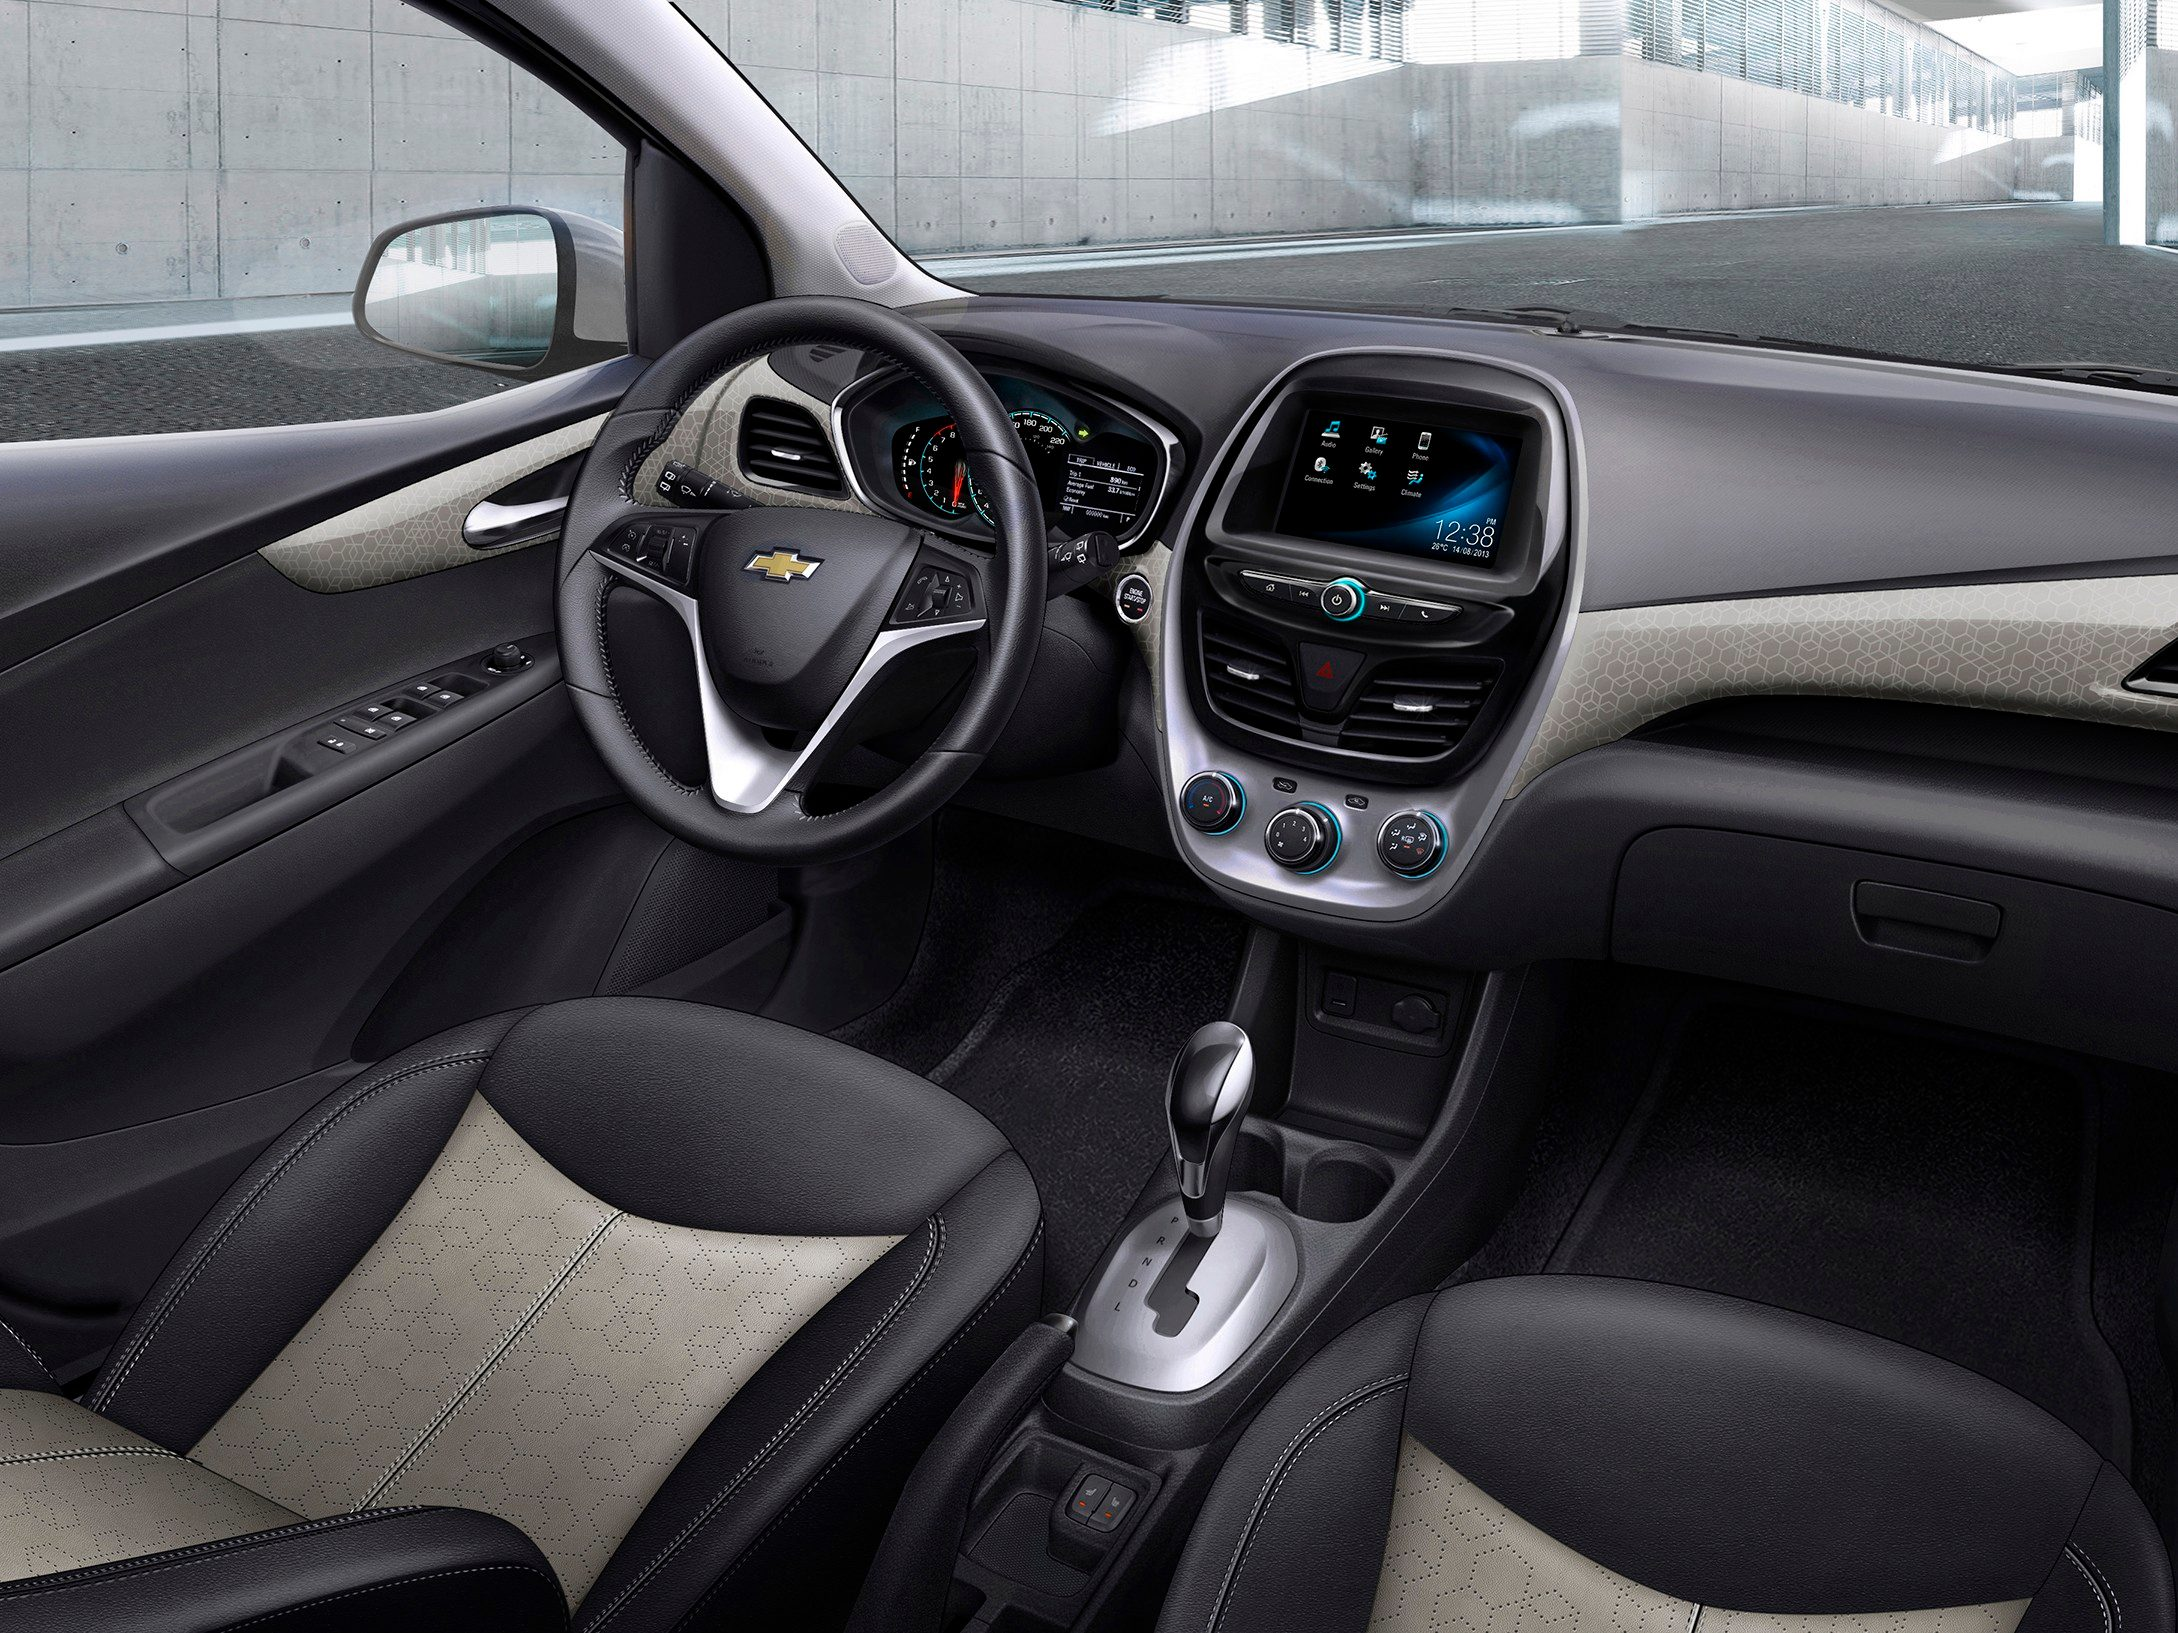 3. The 2016 Chevrolet Spark has an enhanced instrument panel.